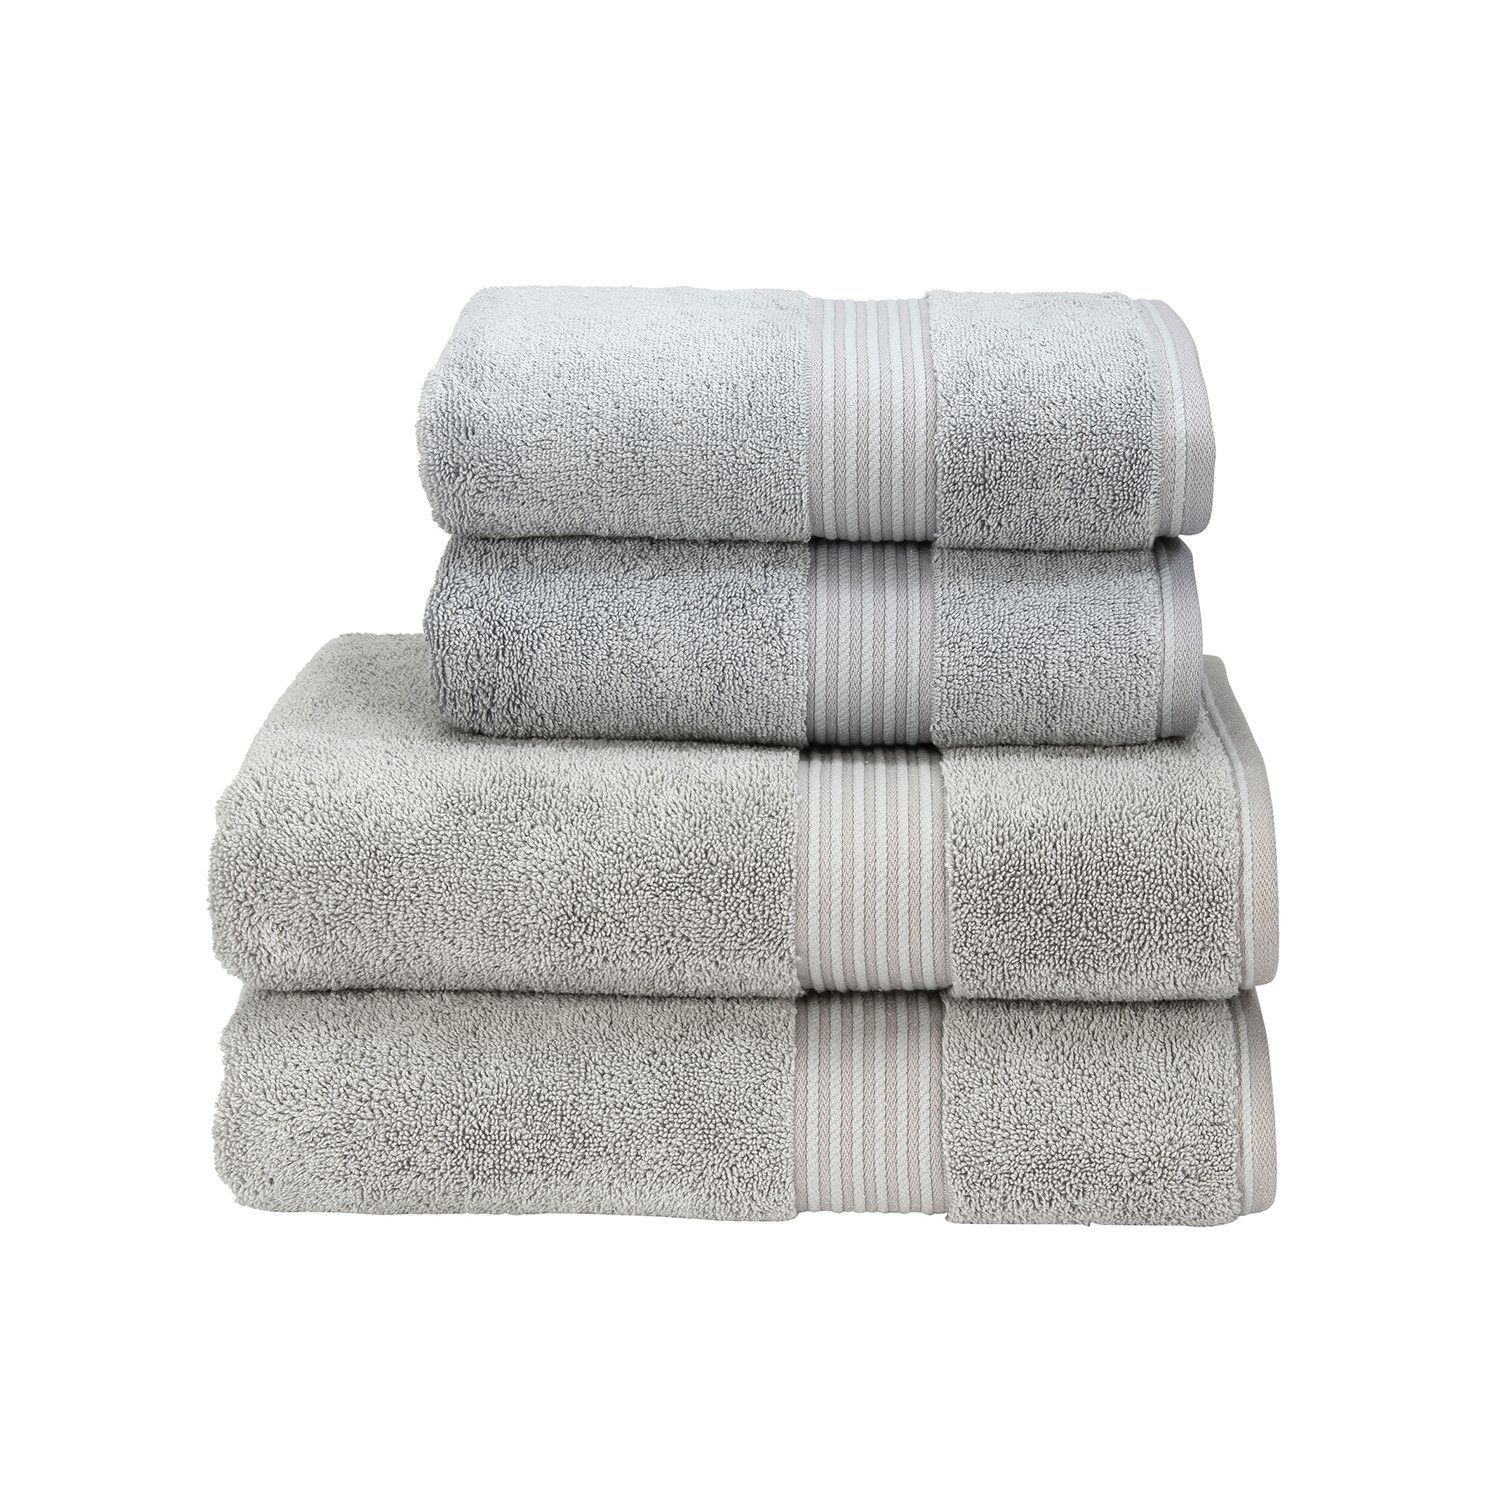 Supreme Hygro US Bath Towel Products Pinterest Cotton Towels - Supima towels for small bathroom ideas